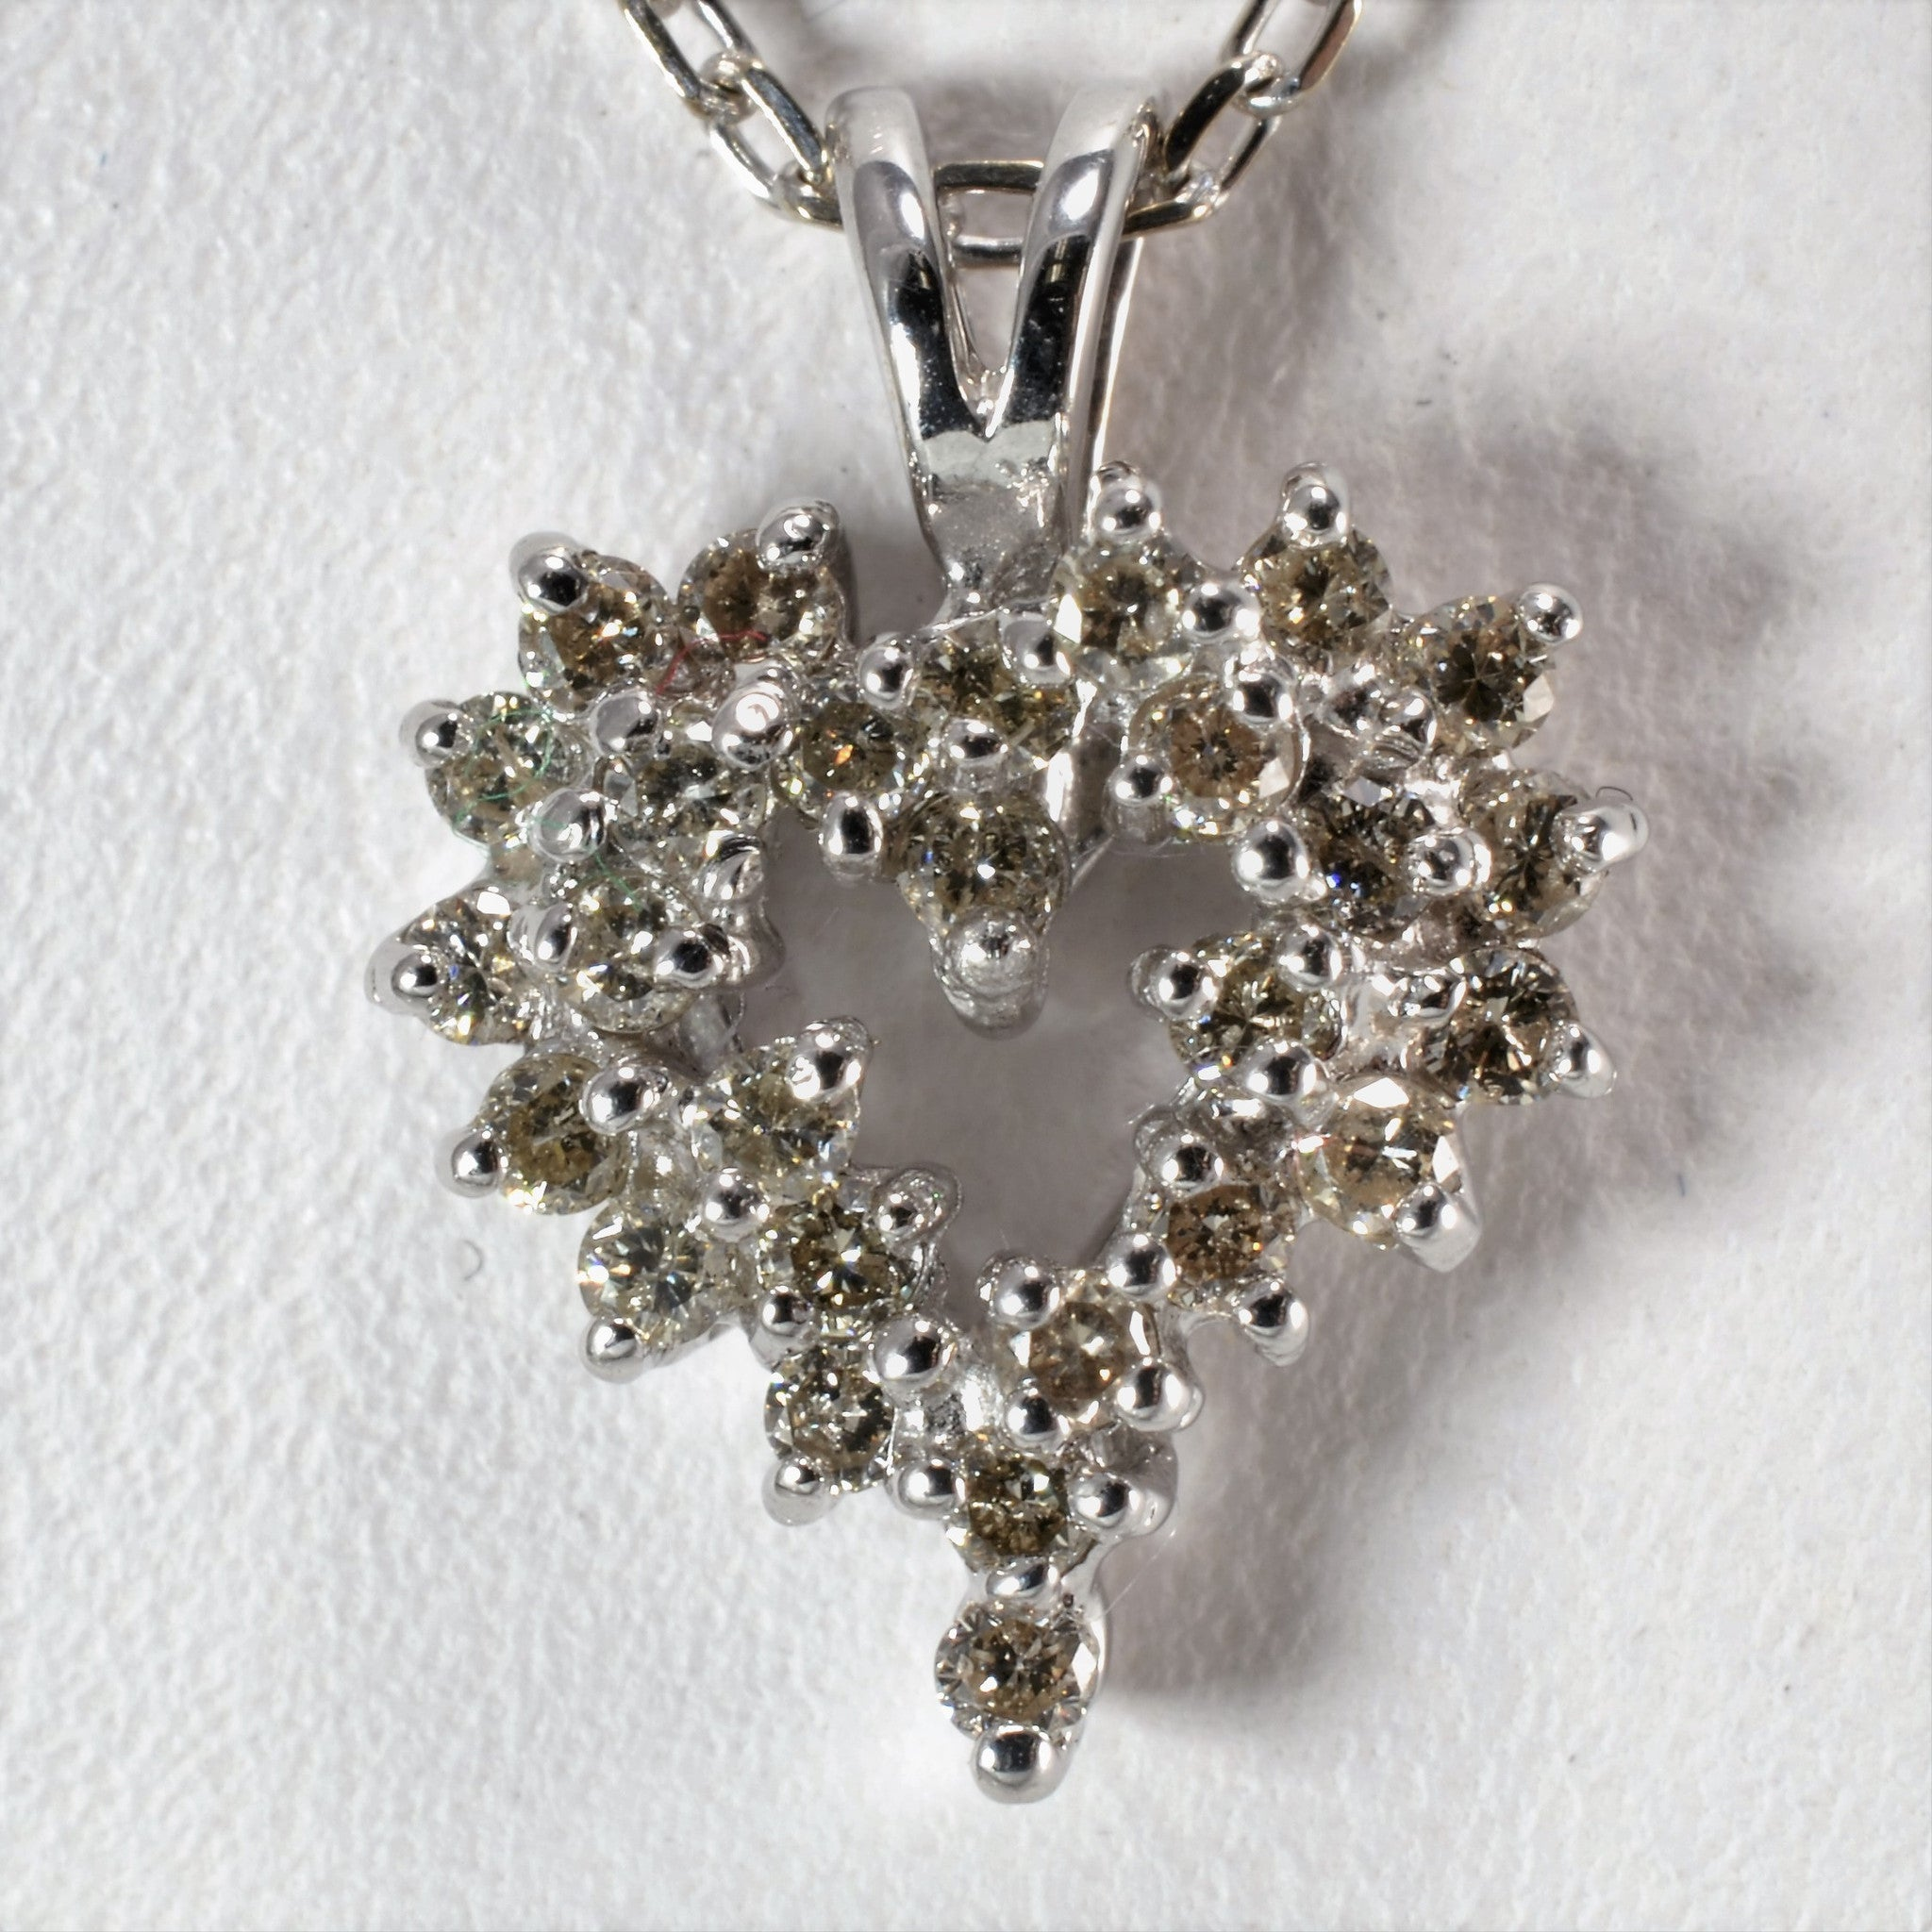 Diamond Cluster Heart Necklace | 0.25 ctw, 18"